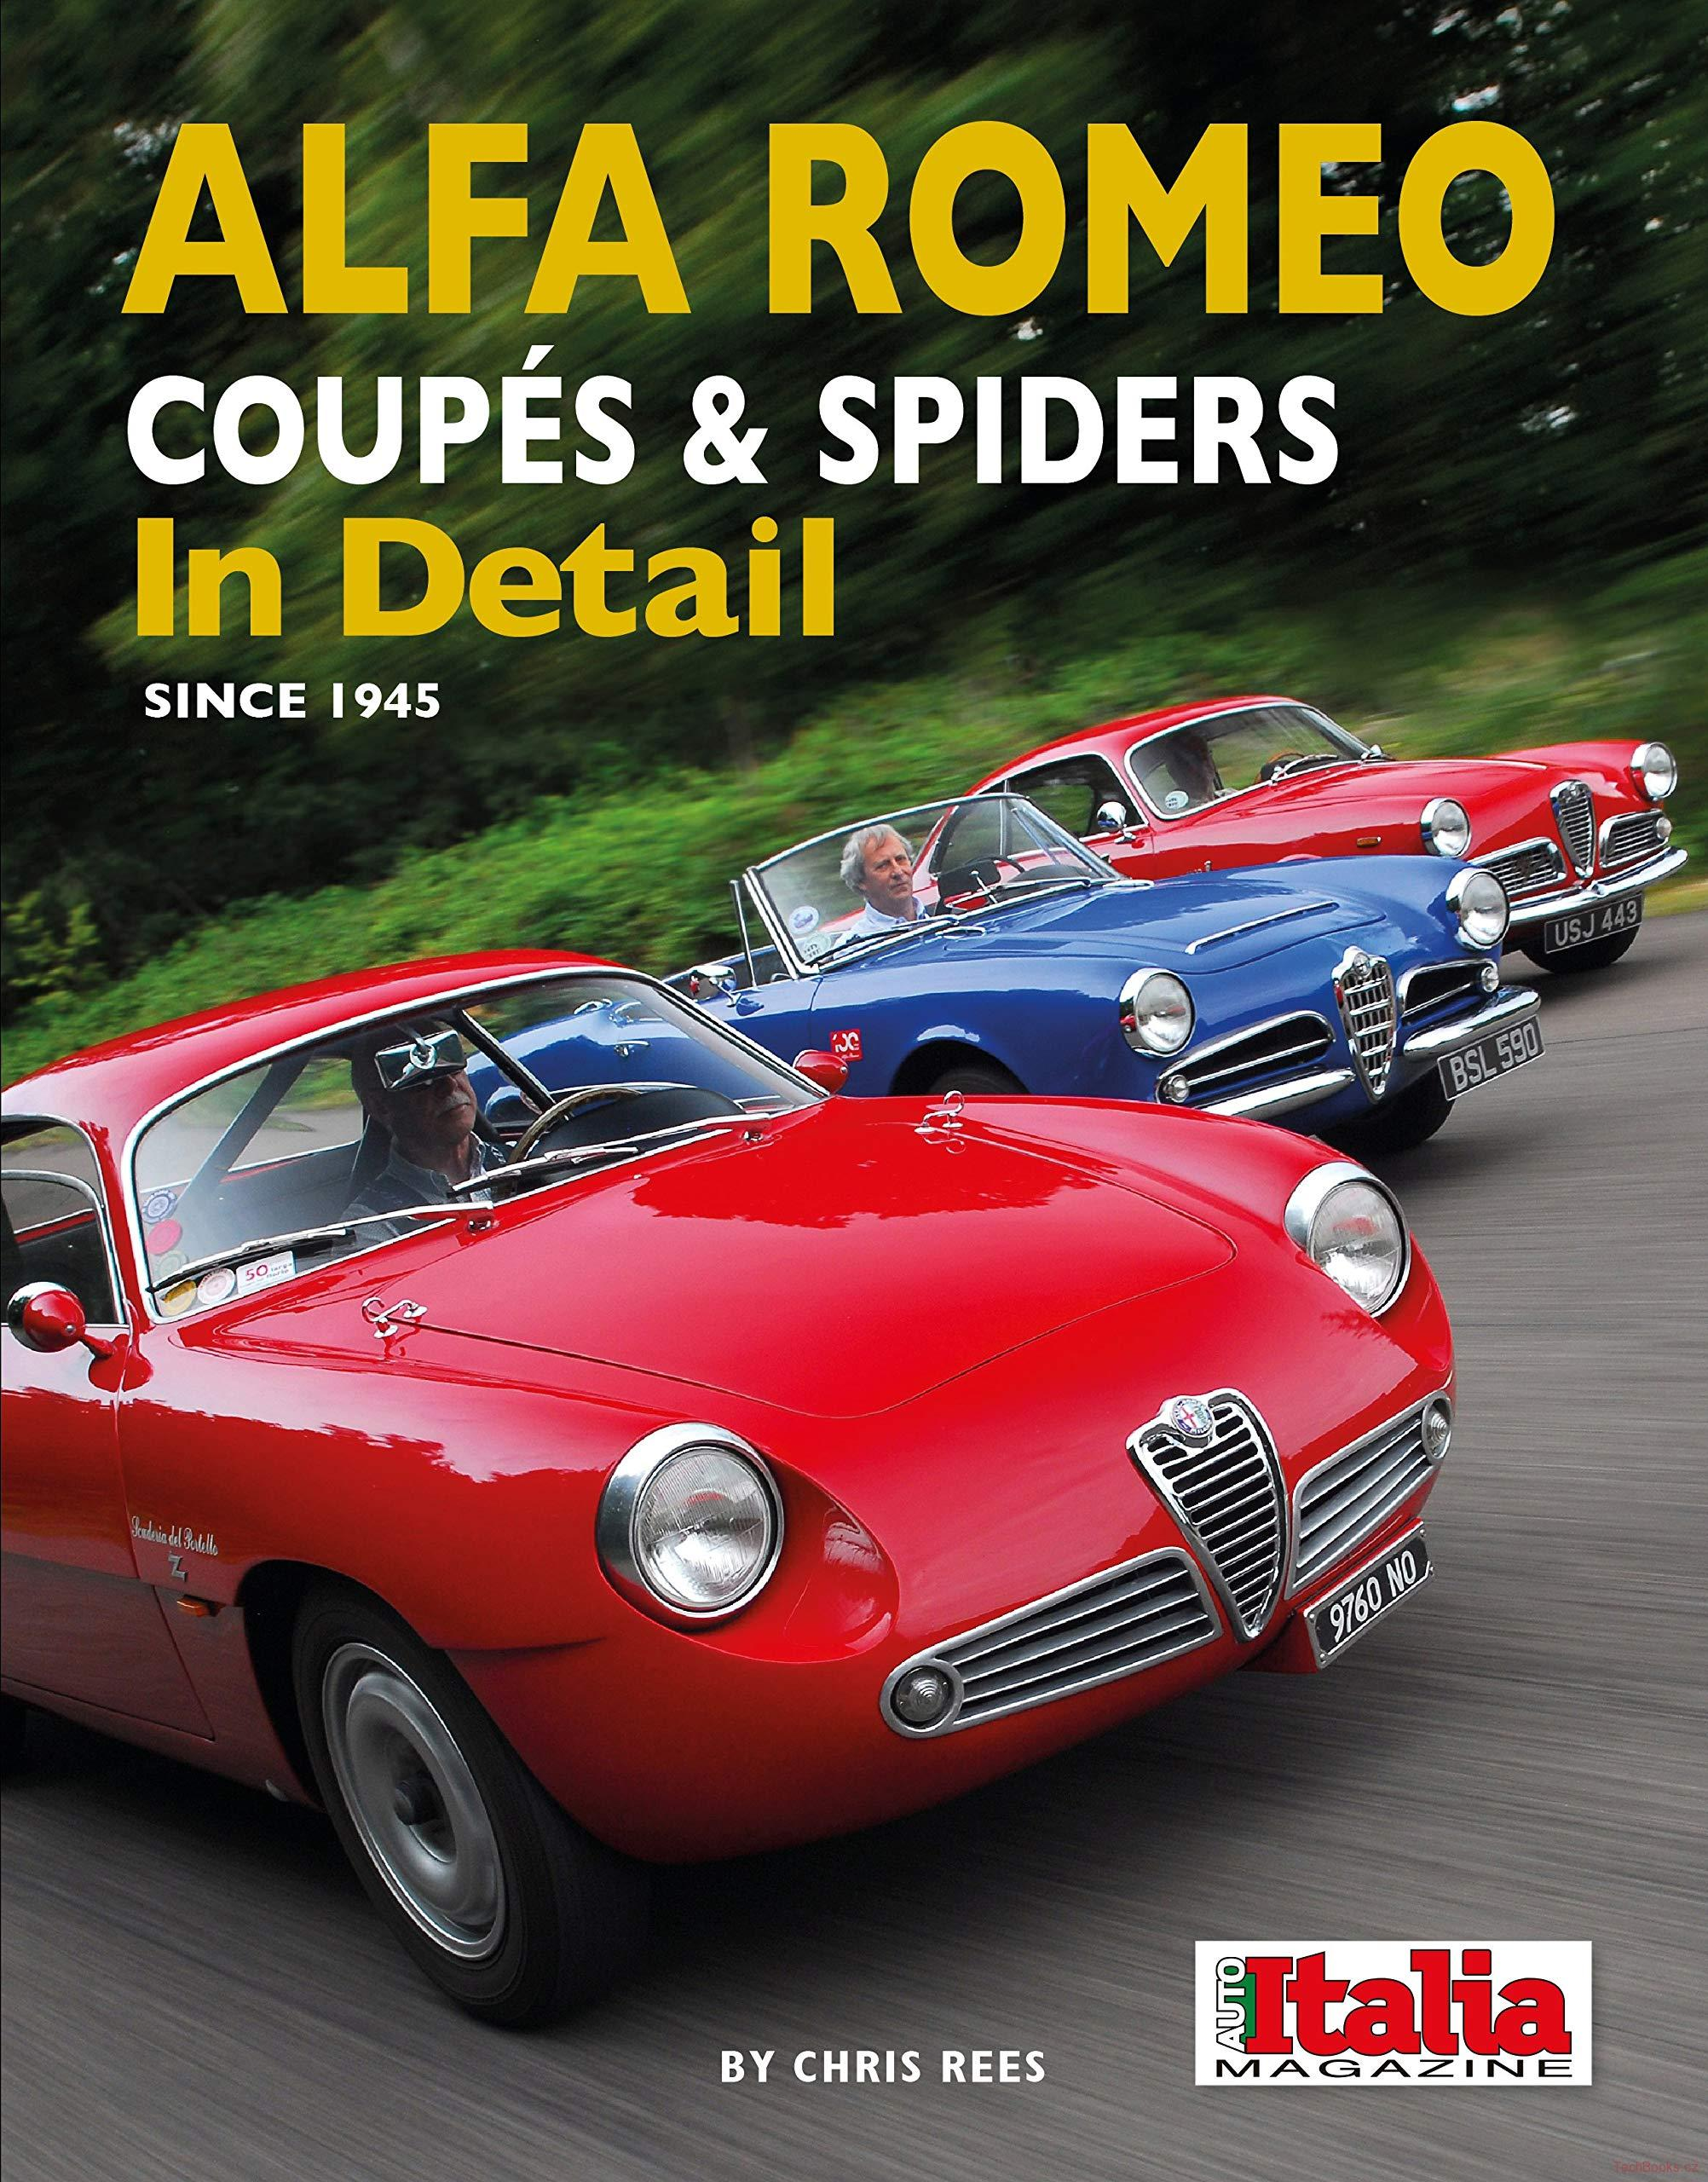 Alfa Romeo Coupés & Spiders In Detail